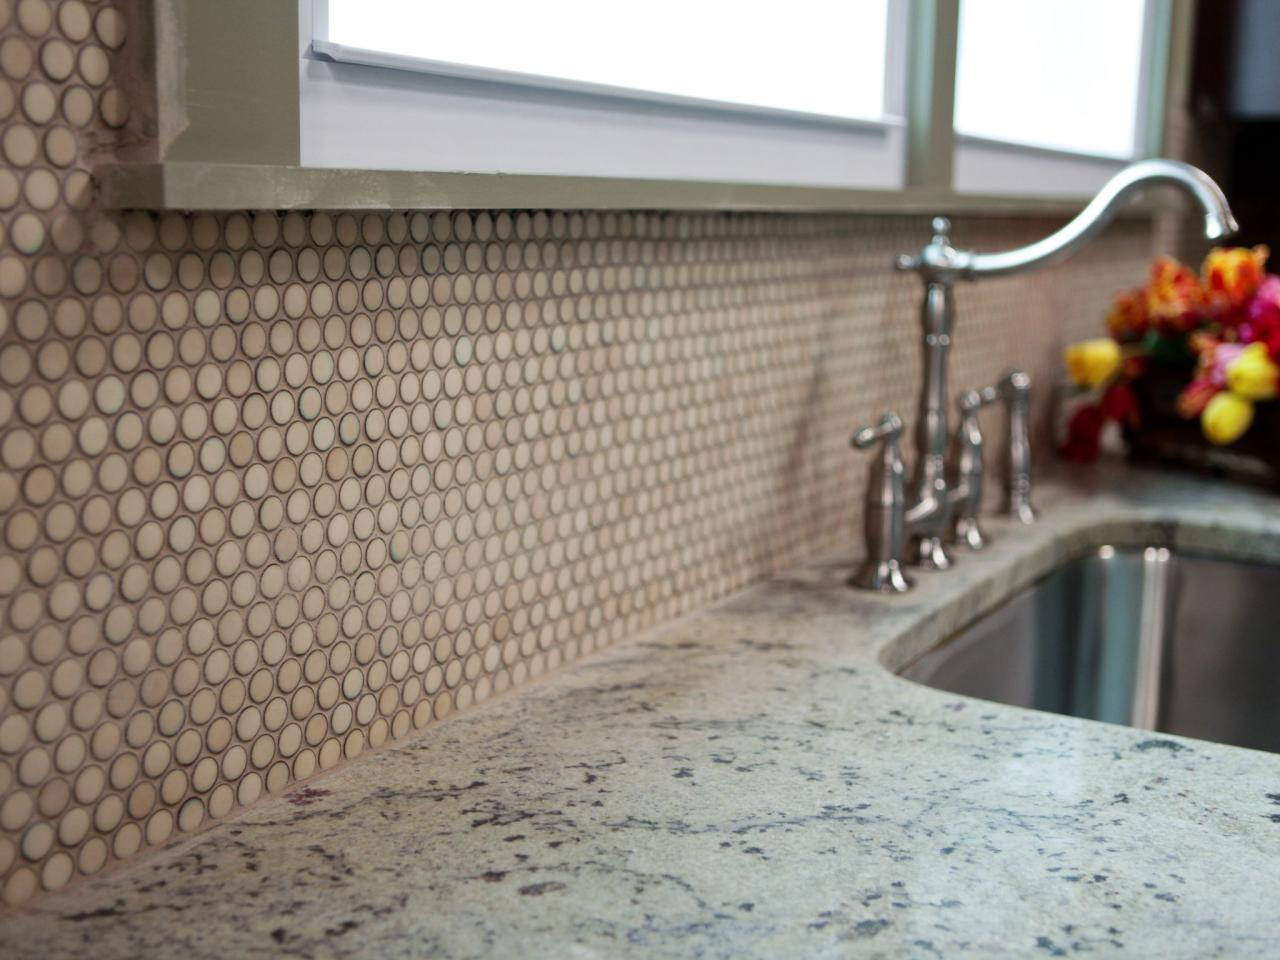 Mosaic tile backsplash ideas pictures tips from hgtv hgtv Backsplash mosaic tile